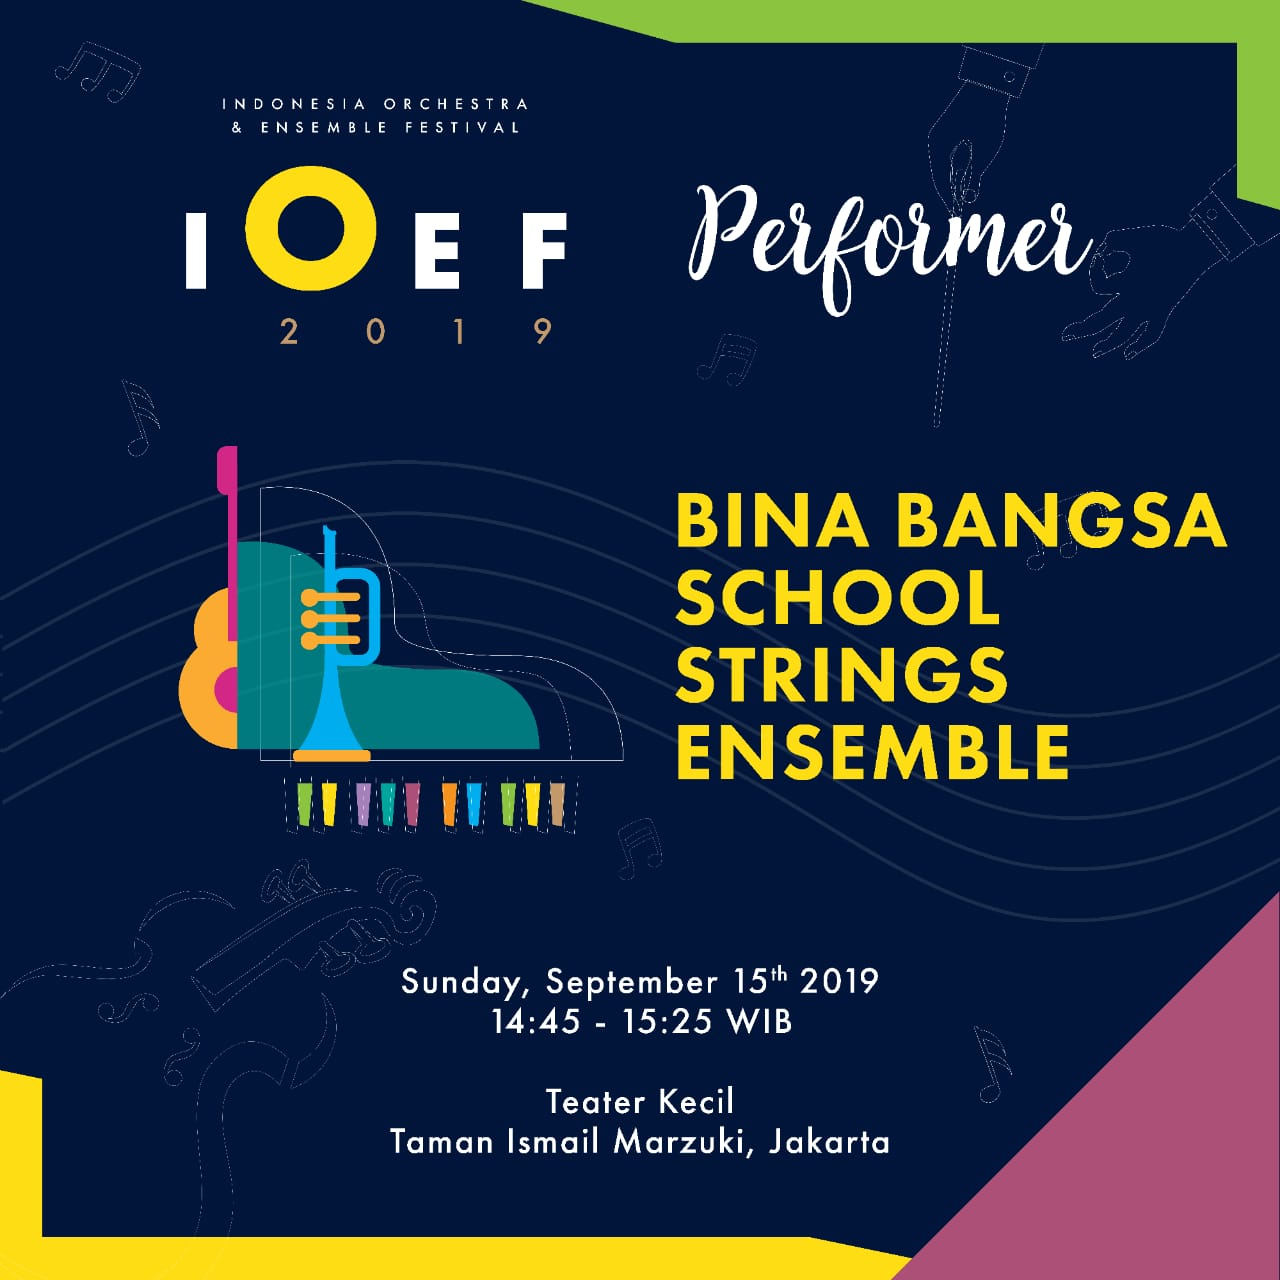 Bina Bangsa School Strings Ensemble